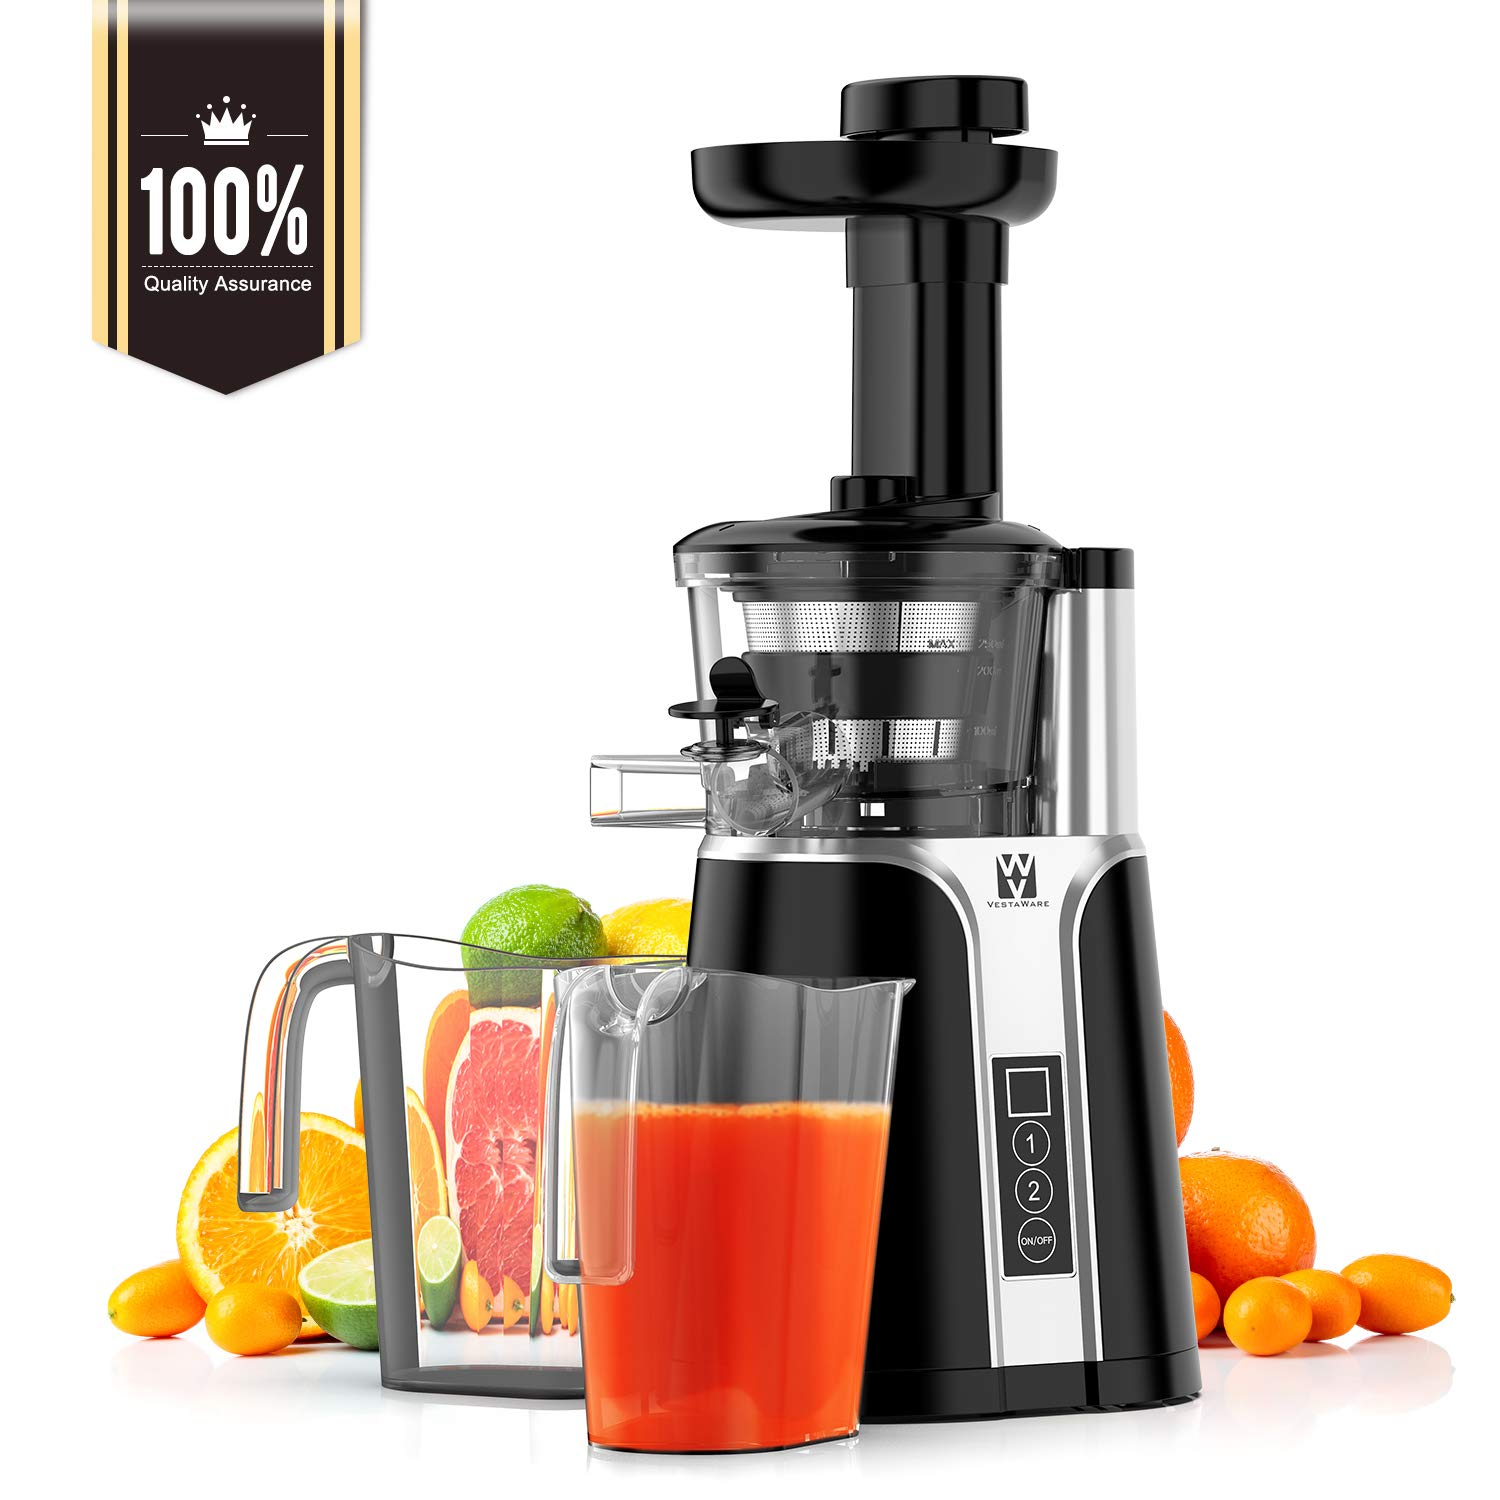 Juicer, Vestaware Slow Masticating Juicer Machines with Two Speed Modes, Easy to Clean Cold Press Juicer with Cleaning Brush for Fruits and Vegetables by Vestaware